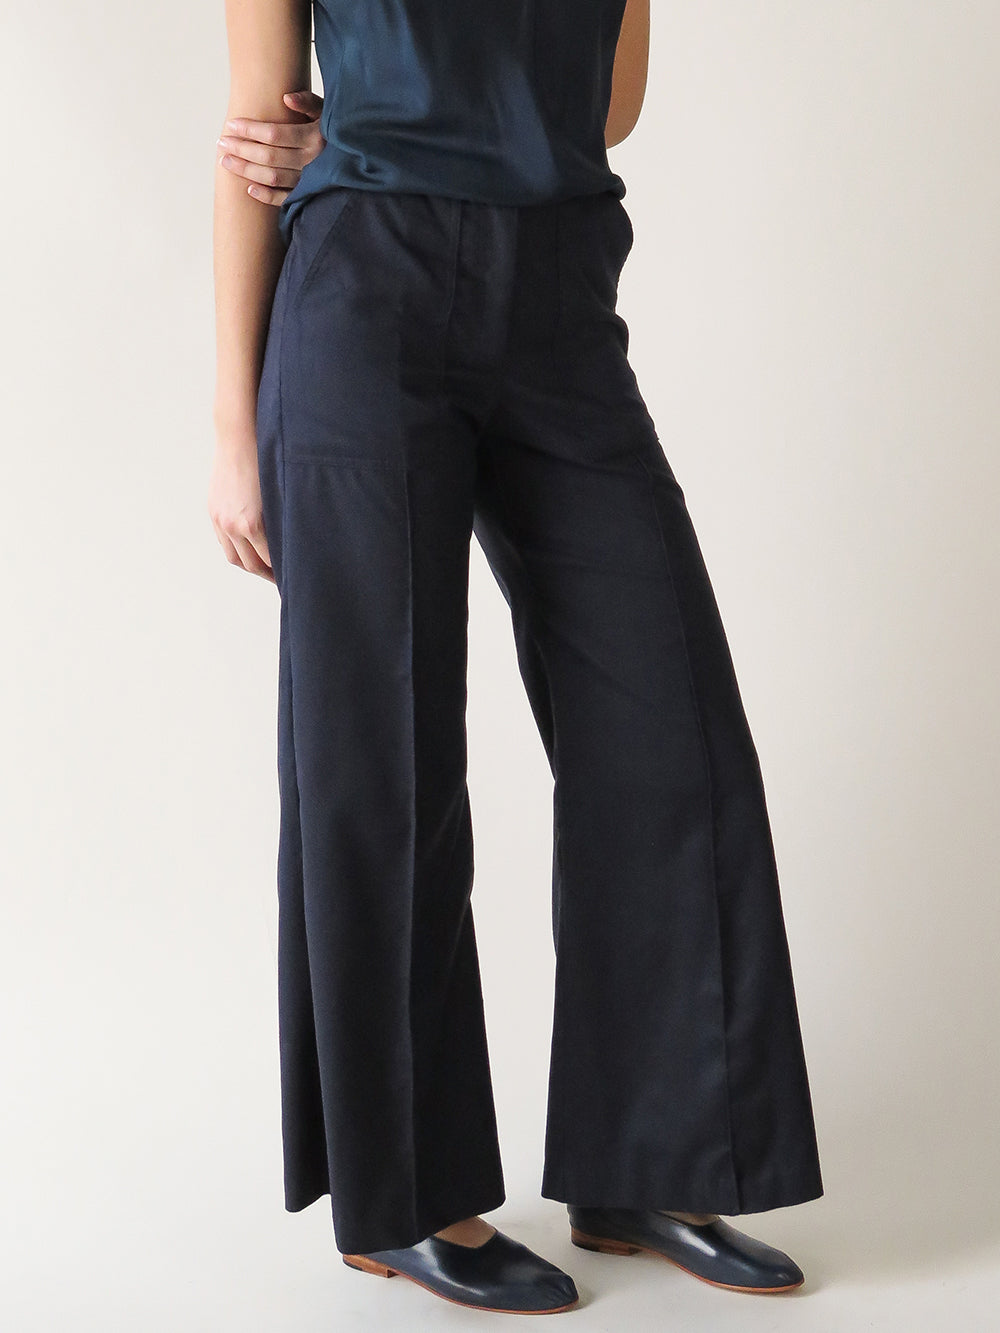 darby pant in navy